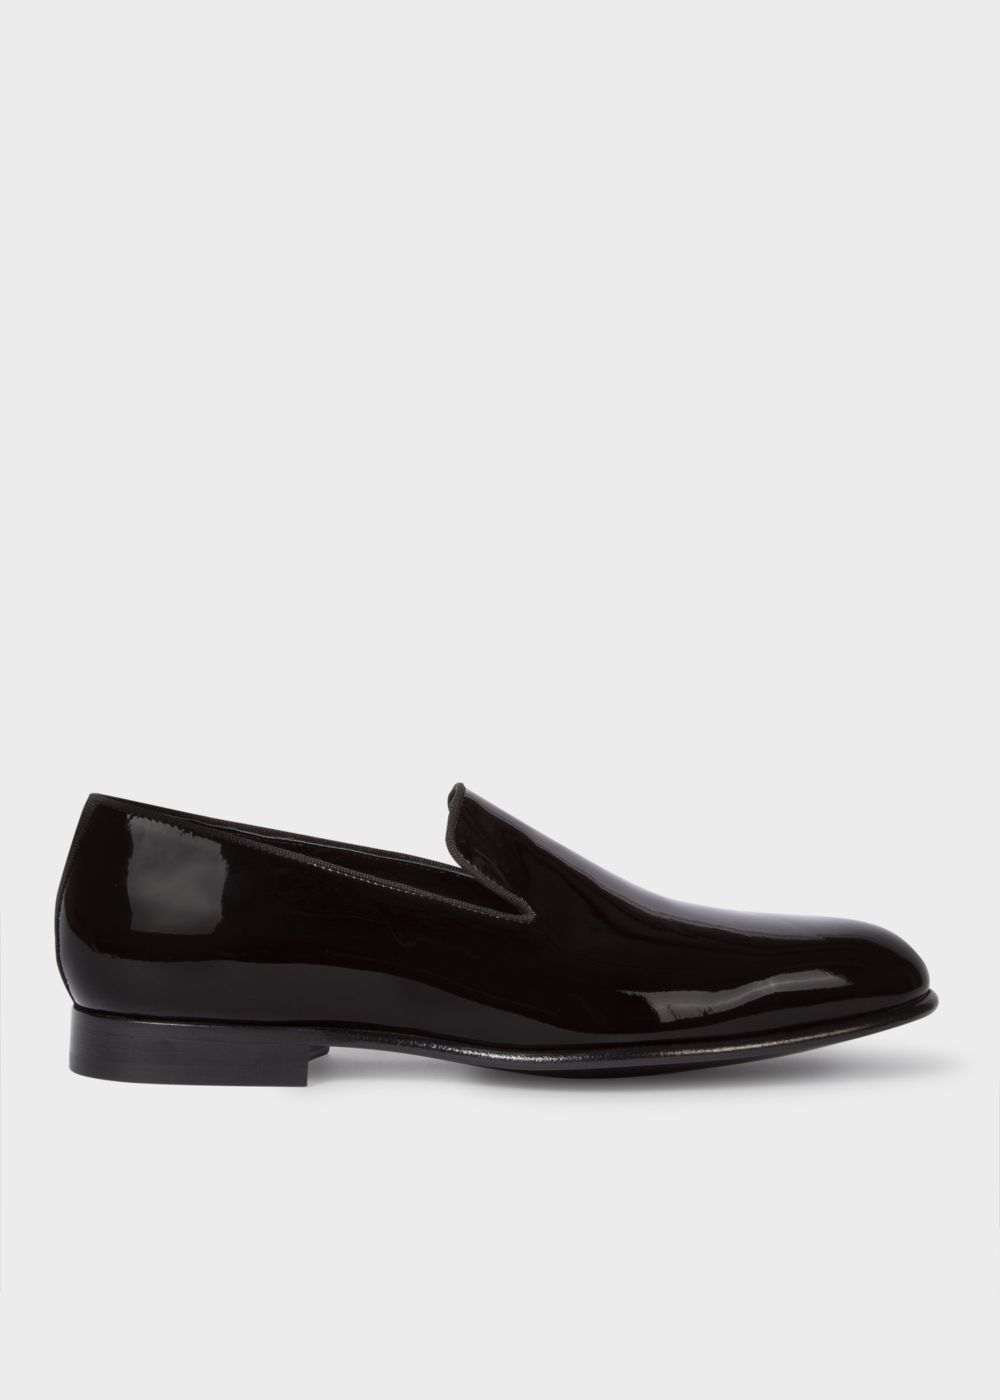 Paul Smith Men's Black Patent Leather 'Rudyard' Loafers